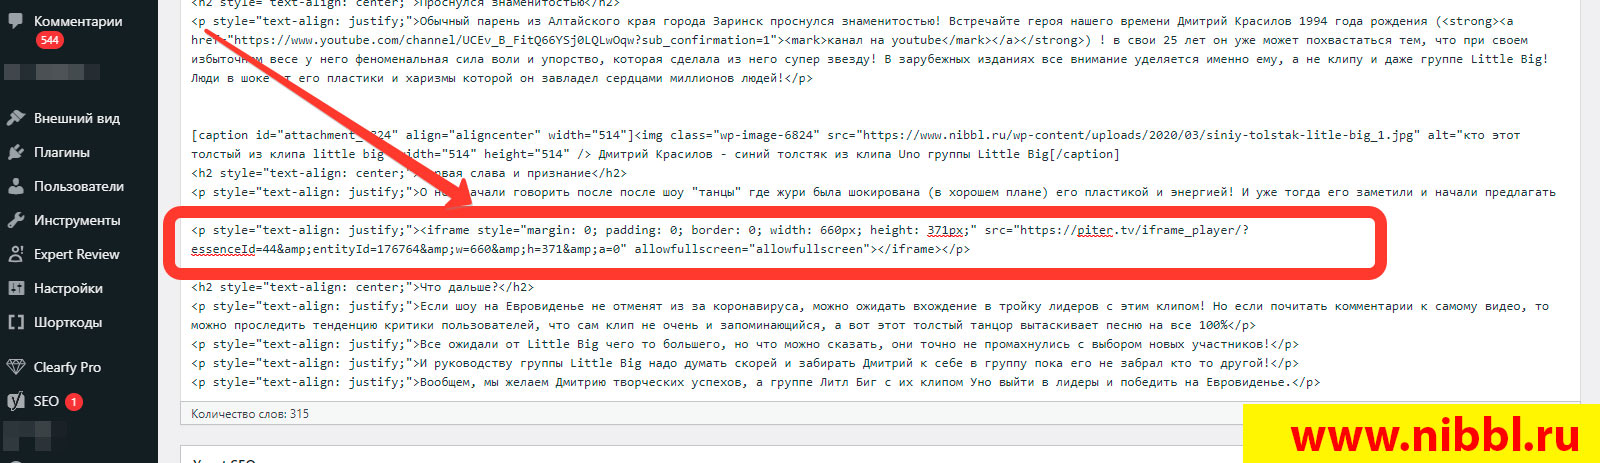 ошибка при формировании фида Below is a rendering of the page up to the first error.